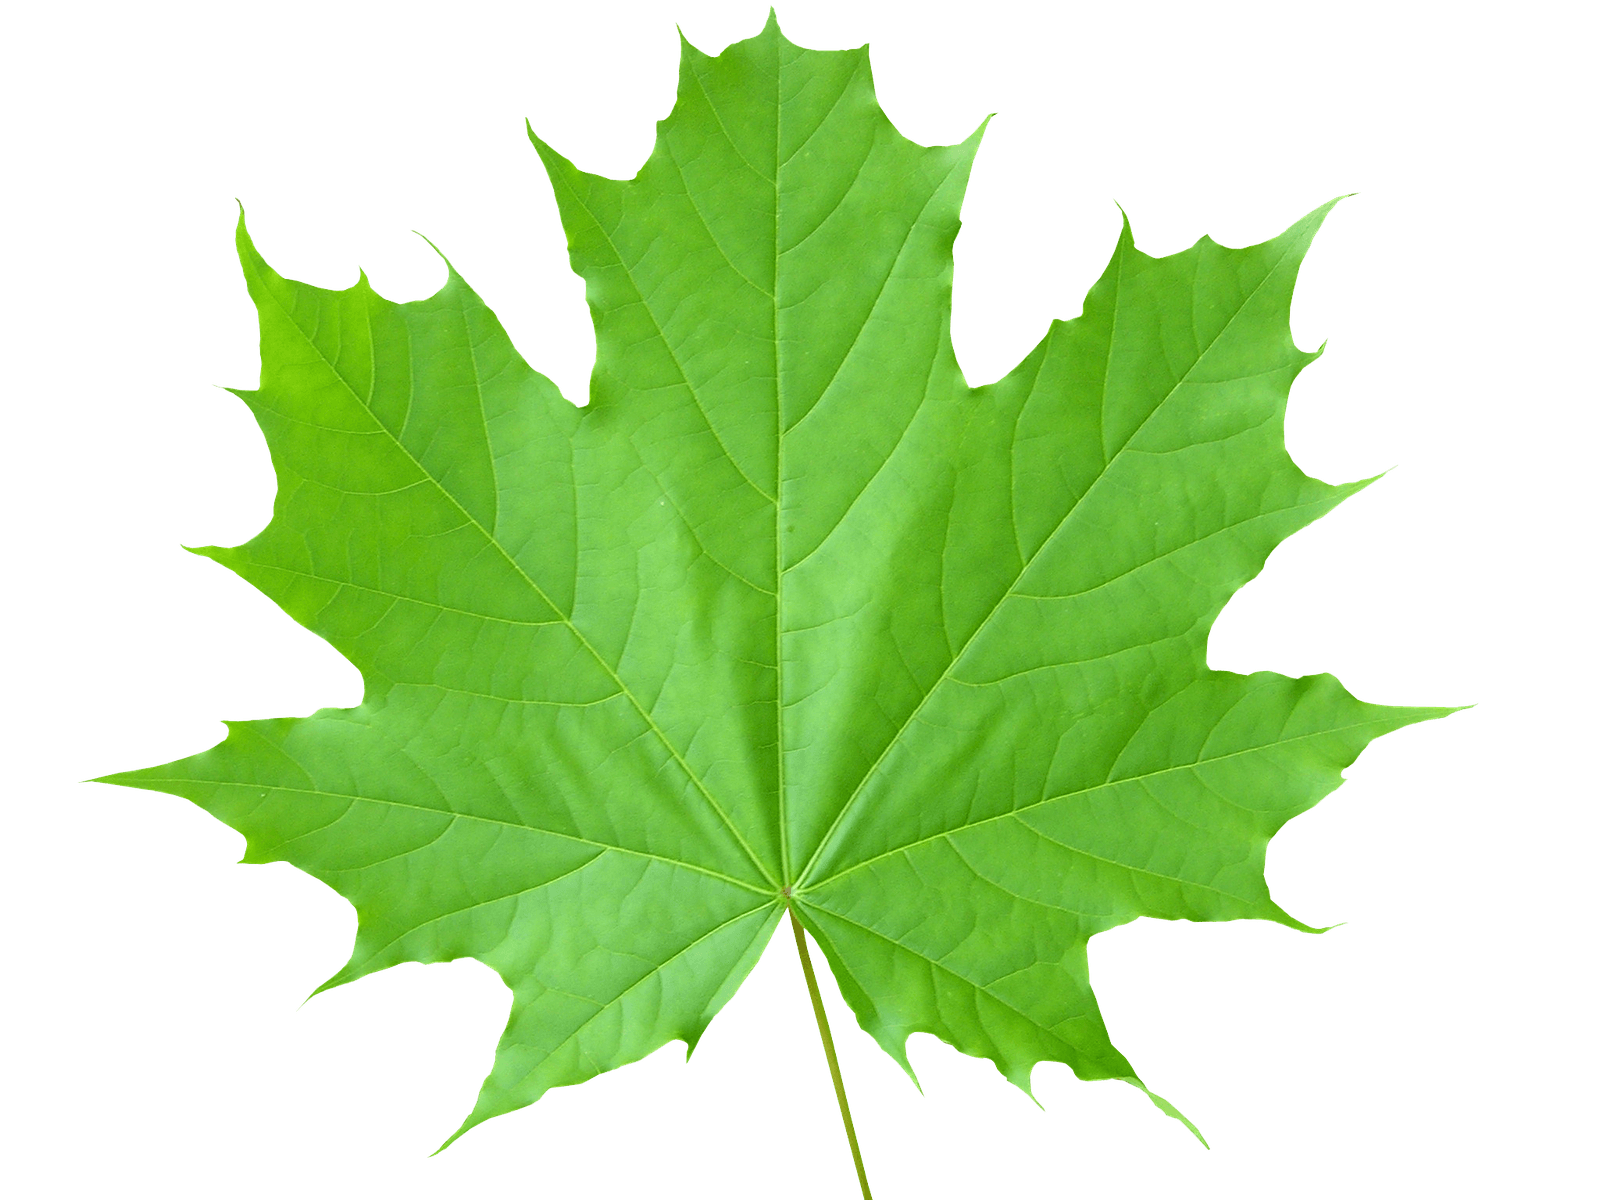 clip stock Leaf clipart greenery. Leaves png images transparent.